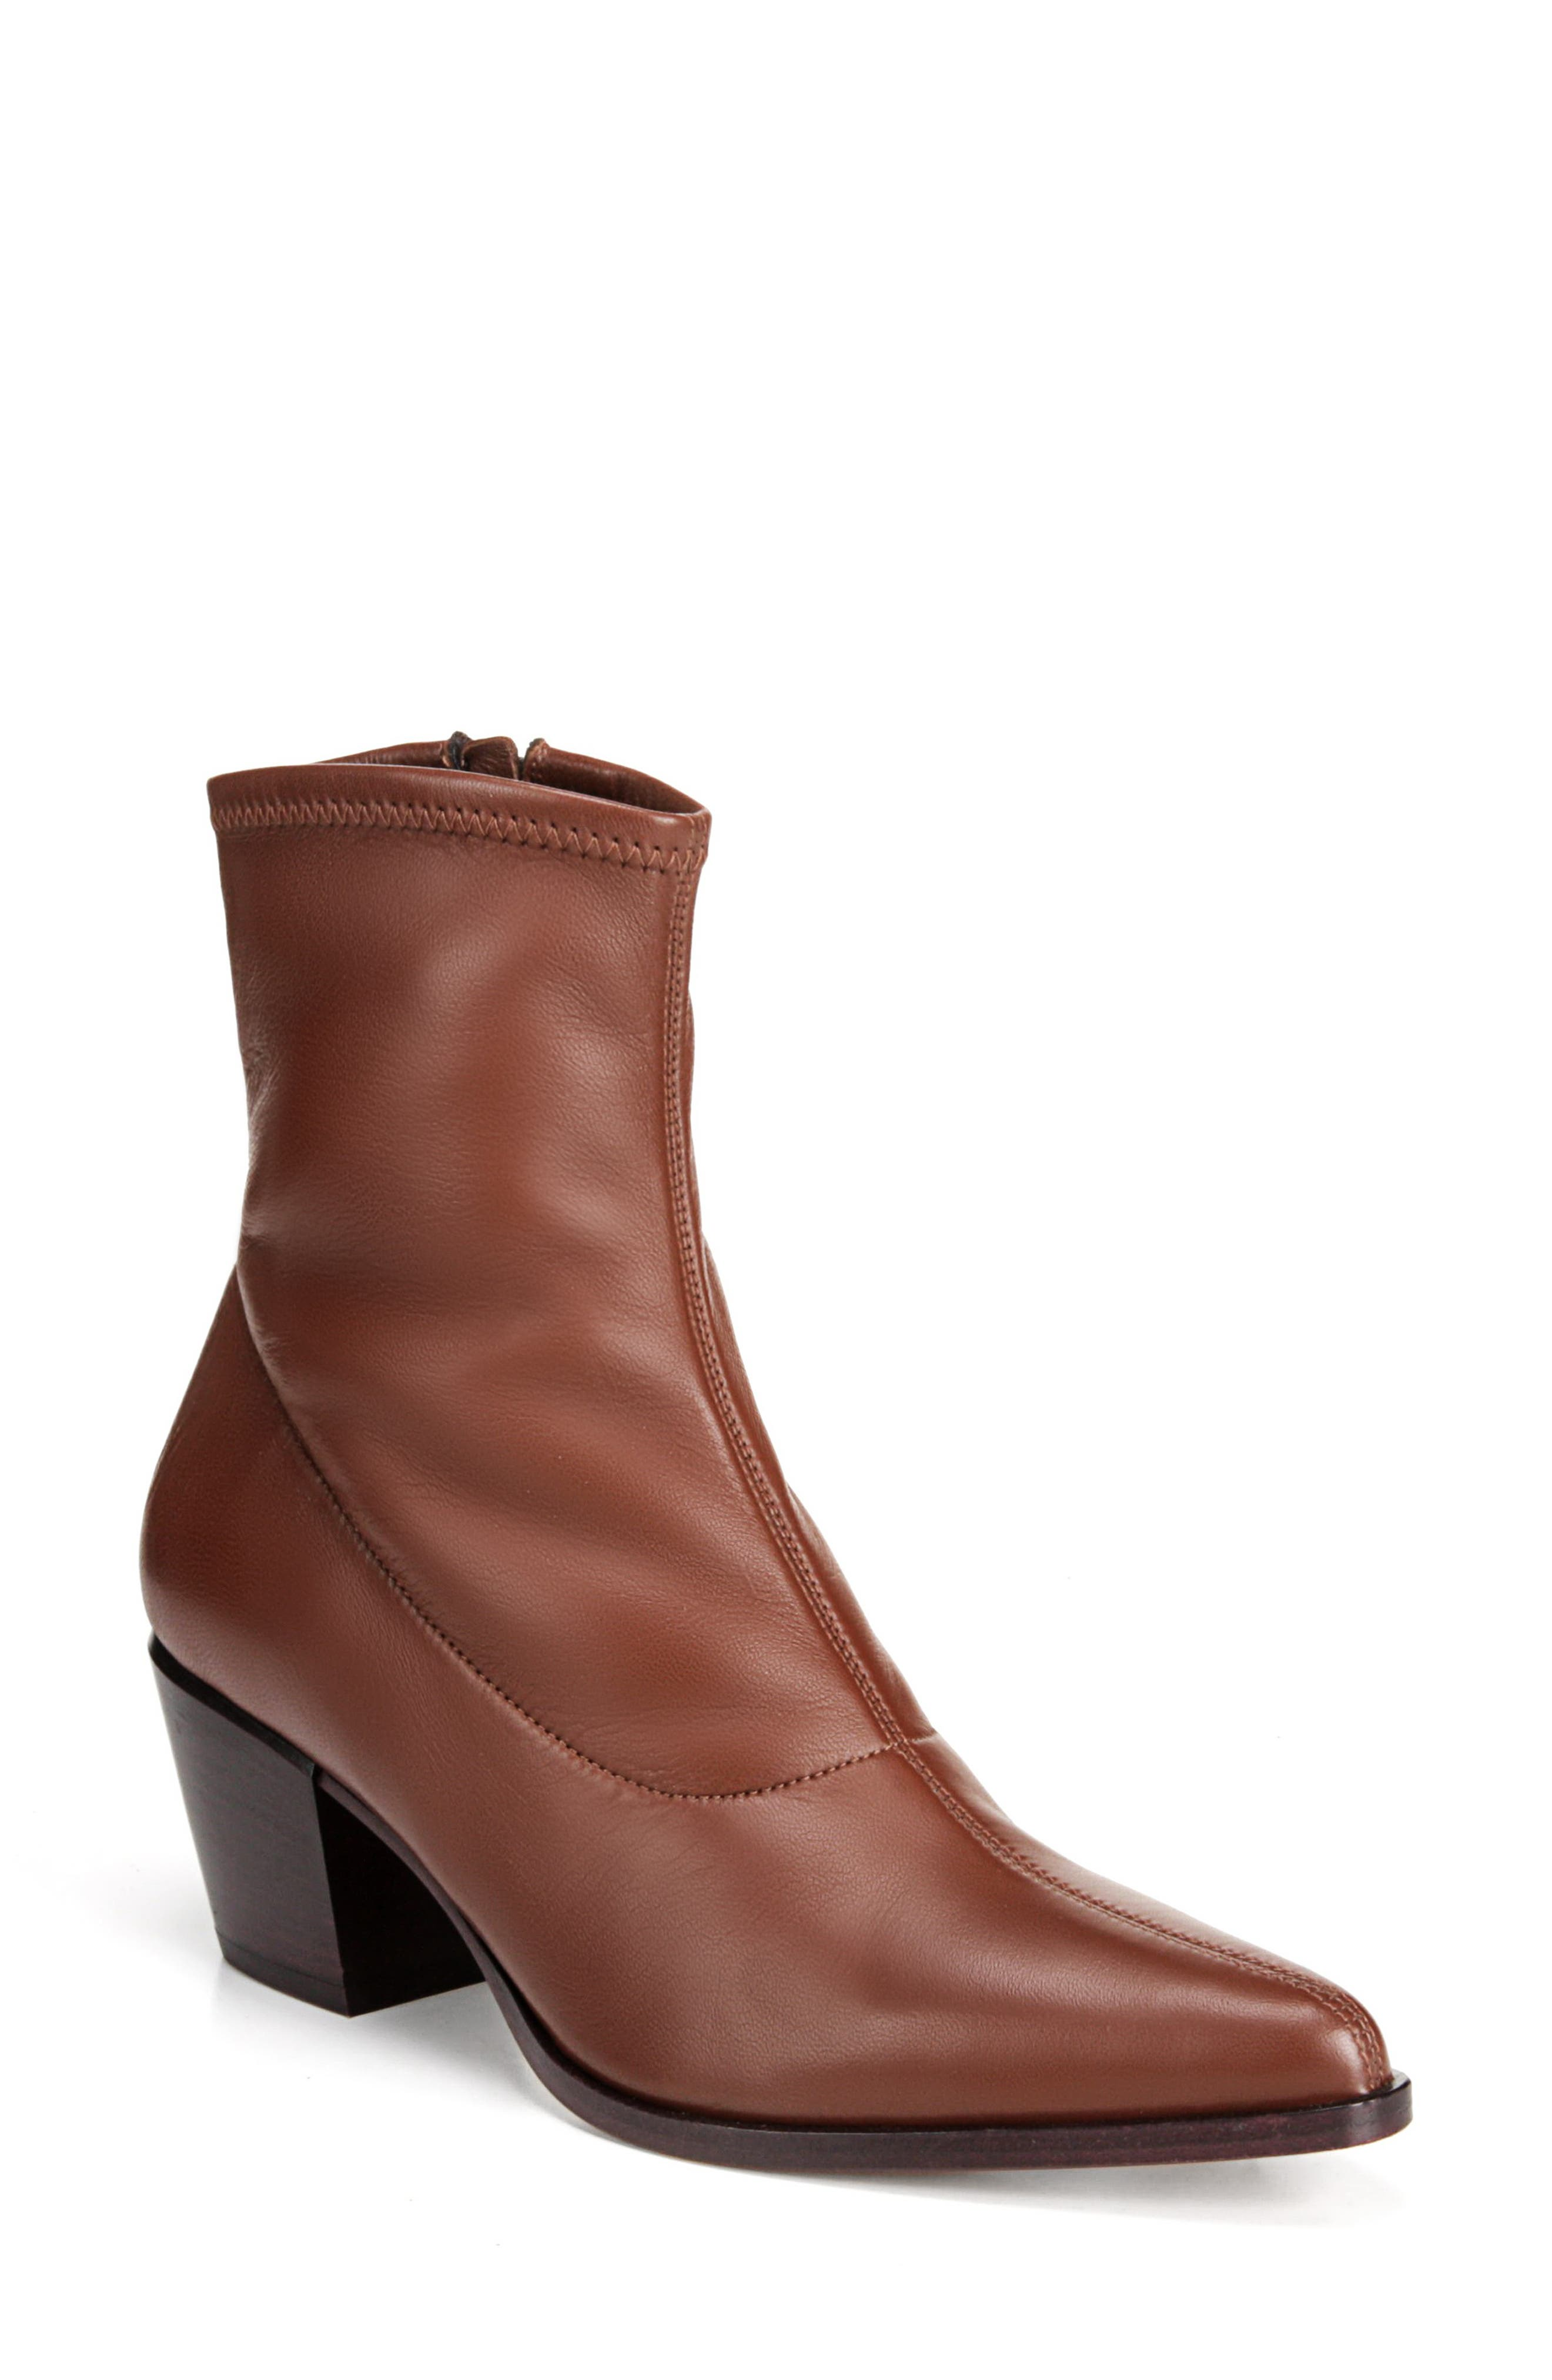 HAYEK STRETCH-LEATHER BOOTIES